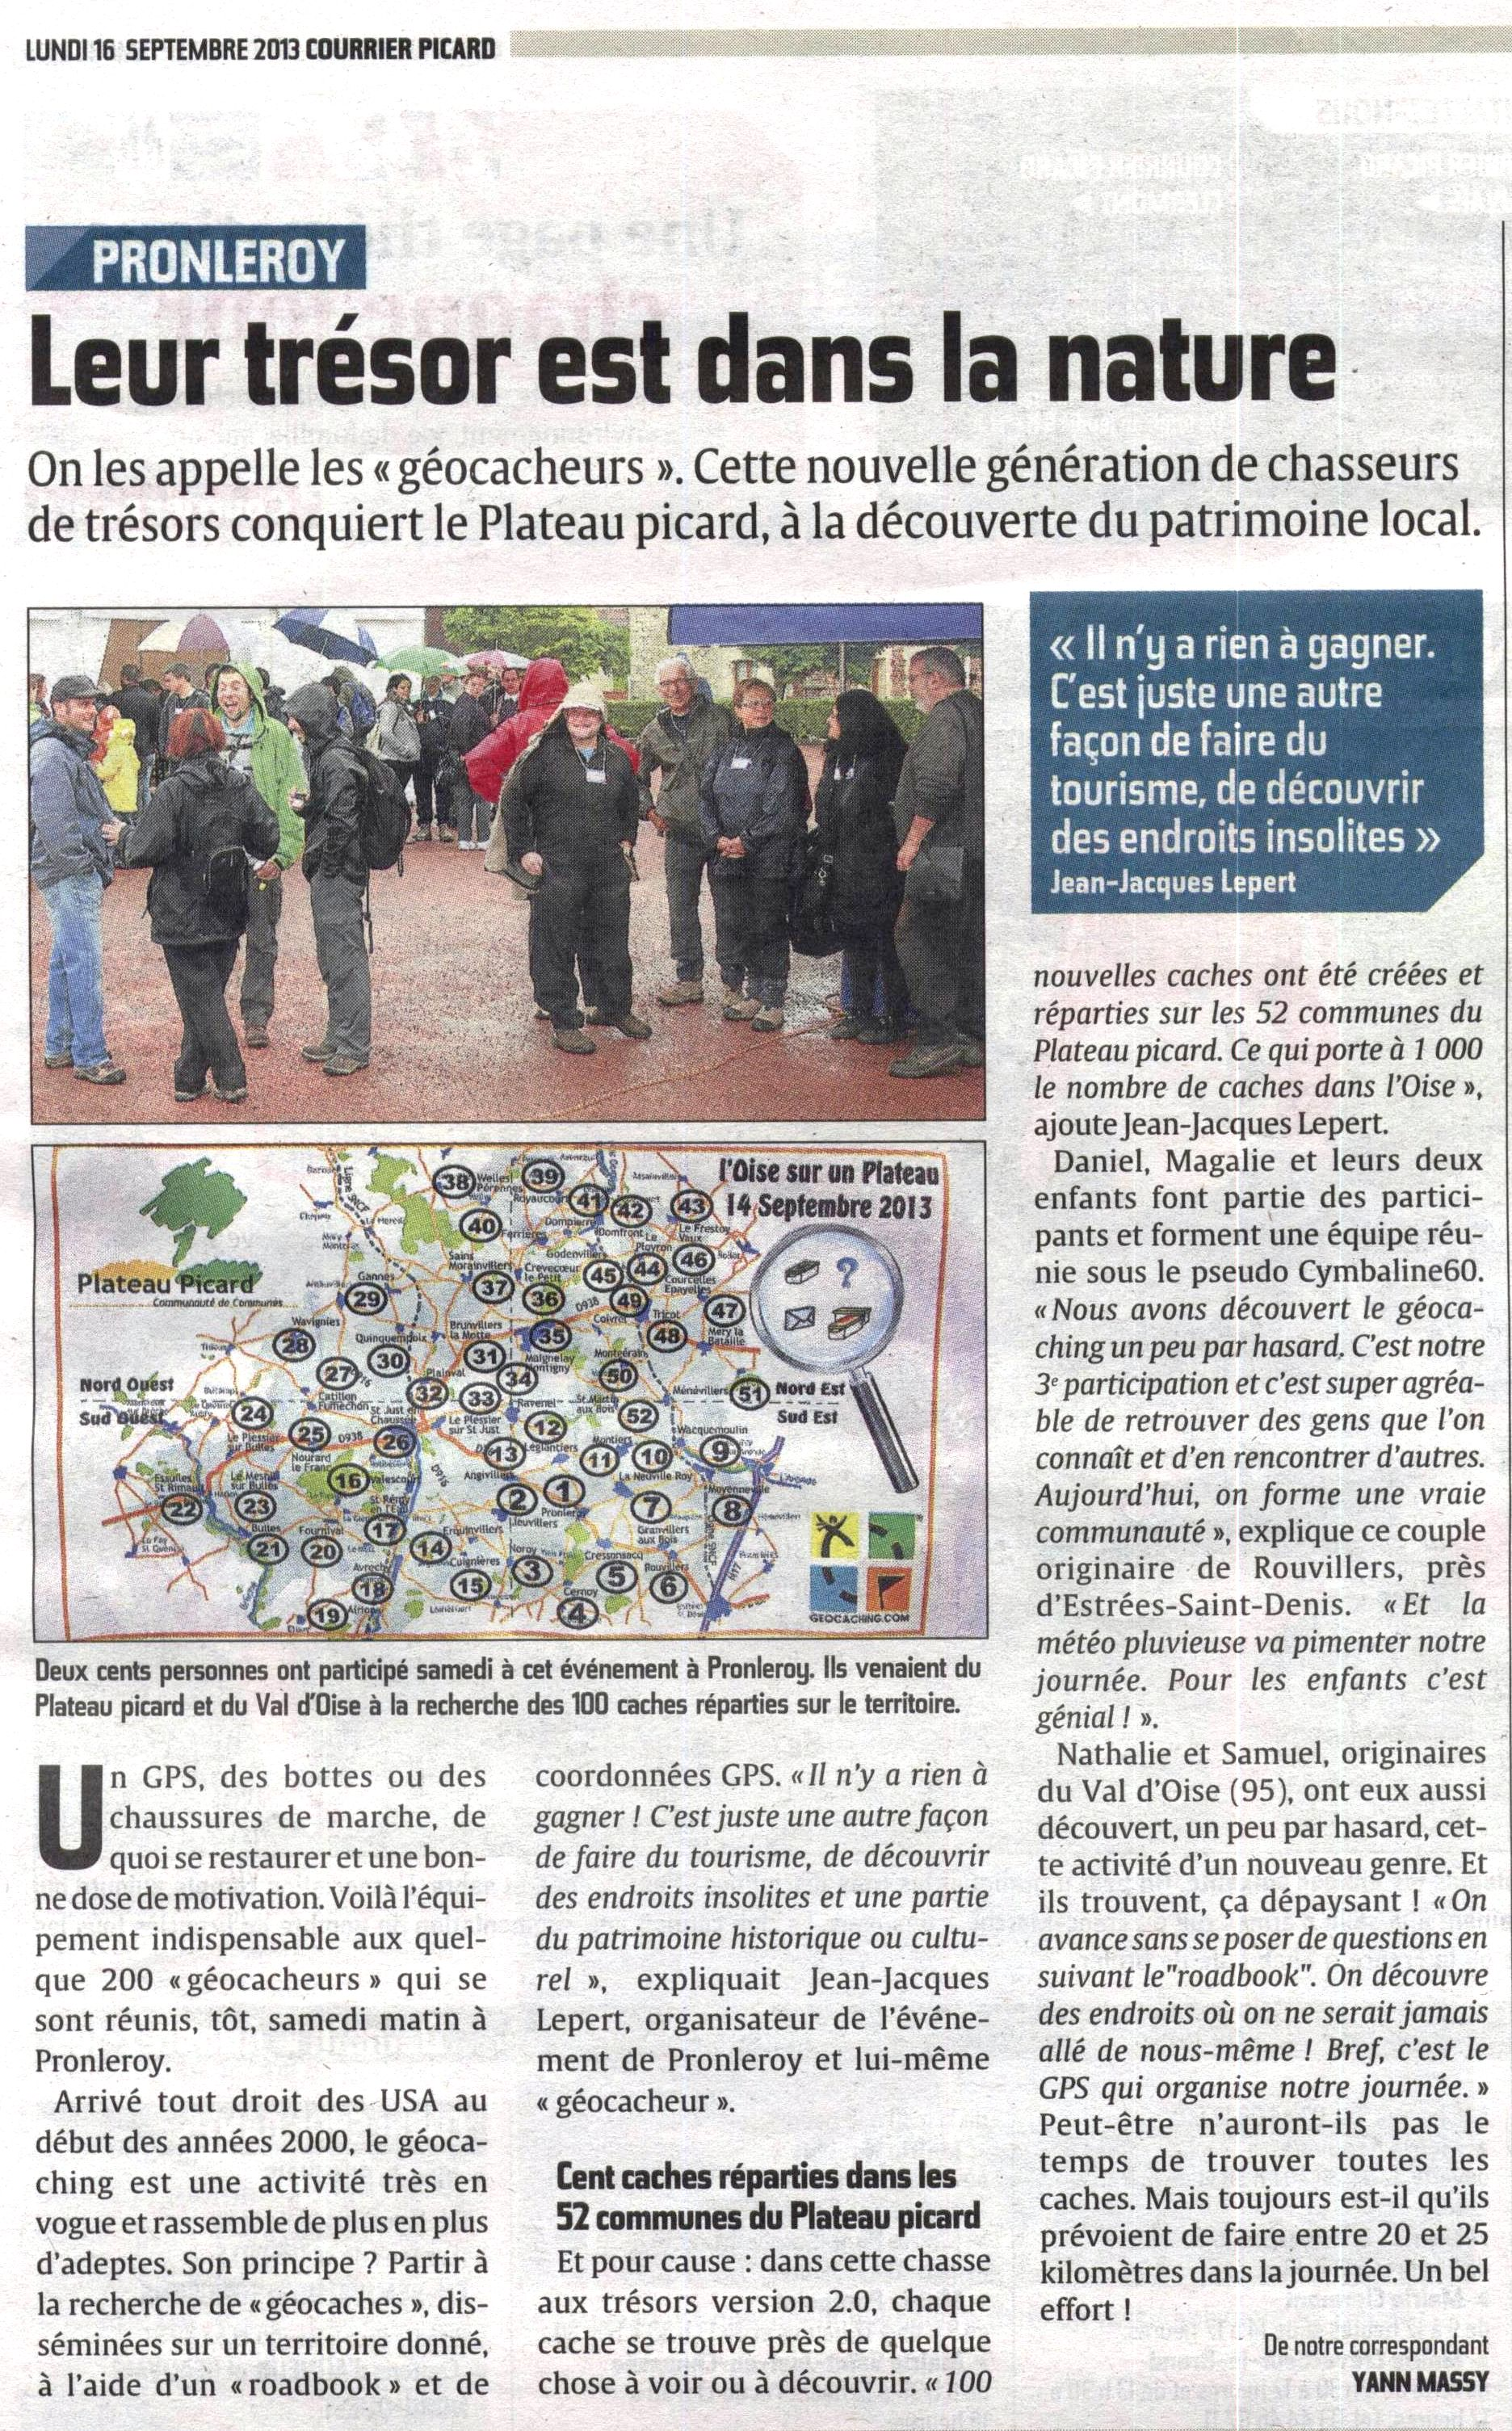 CourrierPicard16Sept2013.jpg